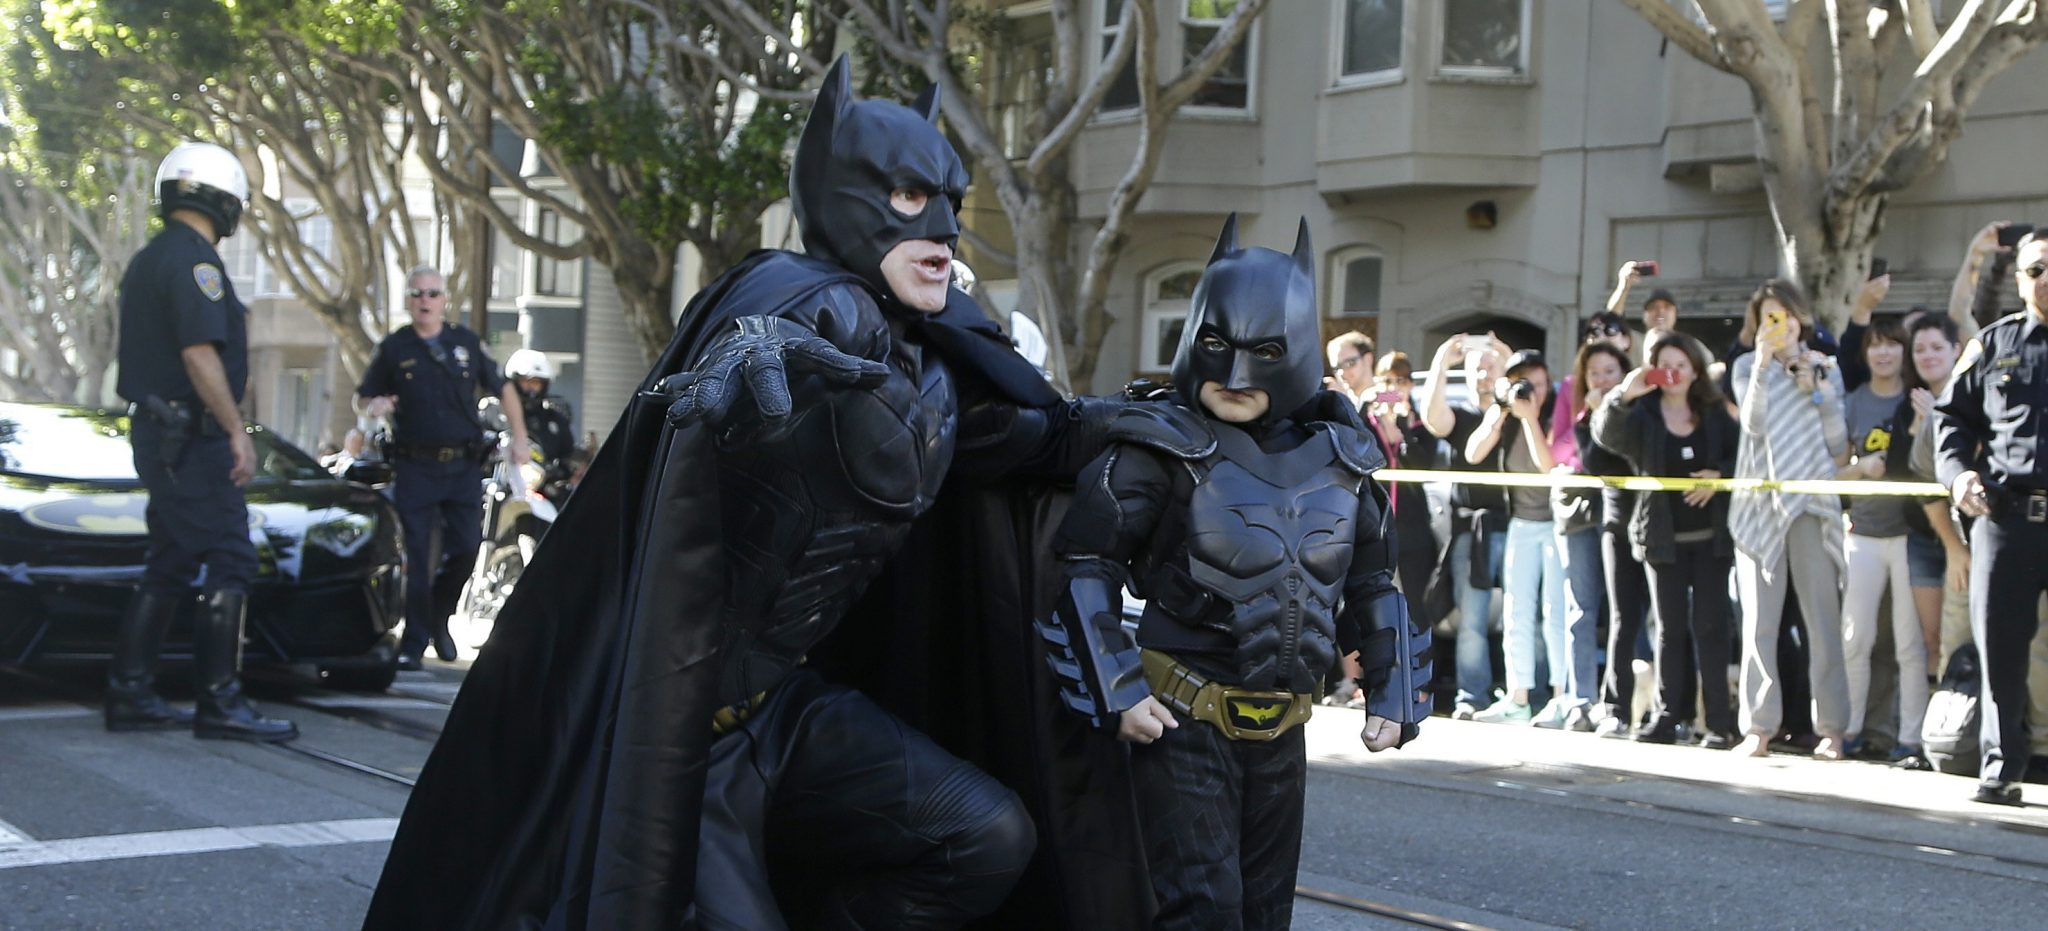 """Miles Scott, dressed as Batkid, right, walks with Batman before saving a damsel in distress in San Francisco, Friday, Nov. 15, 2013.  San Francisco turned into Gotham City on Friday, as city officials helped fulfill Scott's wish to be """"Batkid.""""Scott, a leukemia patient from Tulelake in far Northern California, was called into service on Friday morning by San Francisco Police Chief Greg Suhr to help fight crime, The Greater Bay Area Make-A-Wish Foundation says. (AP Photo/Jeff Chiu)"""